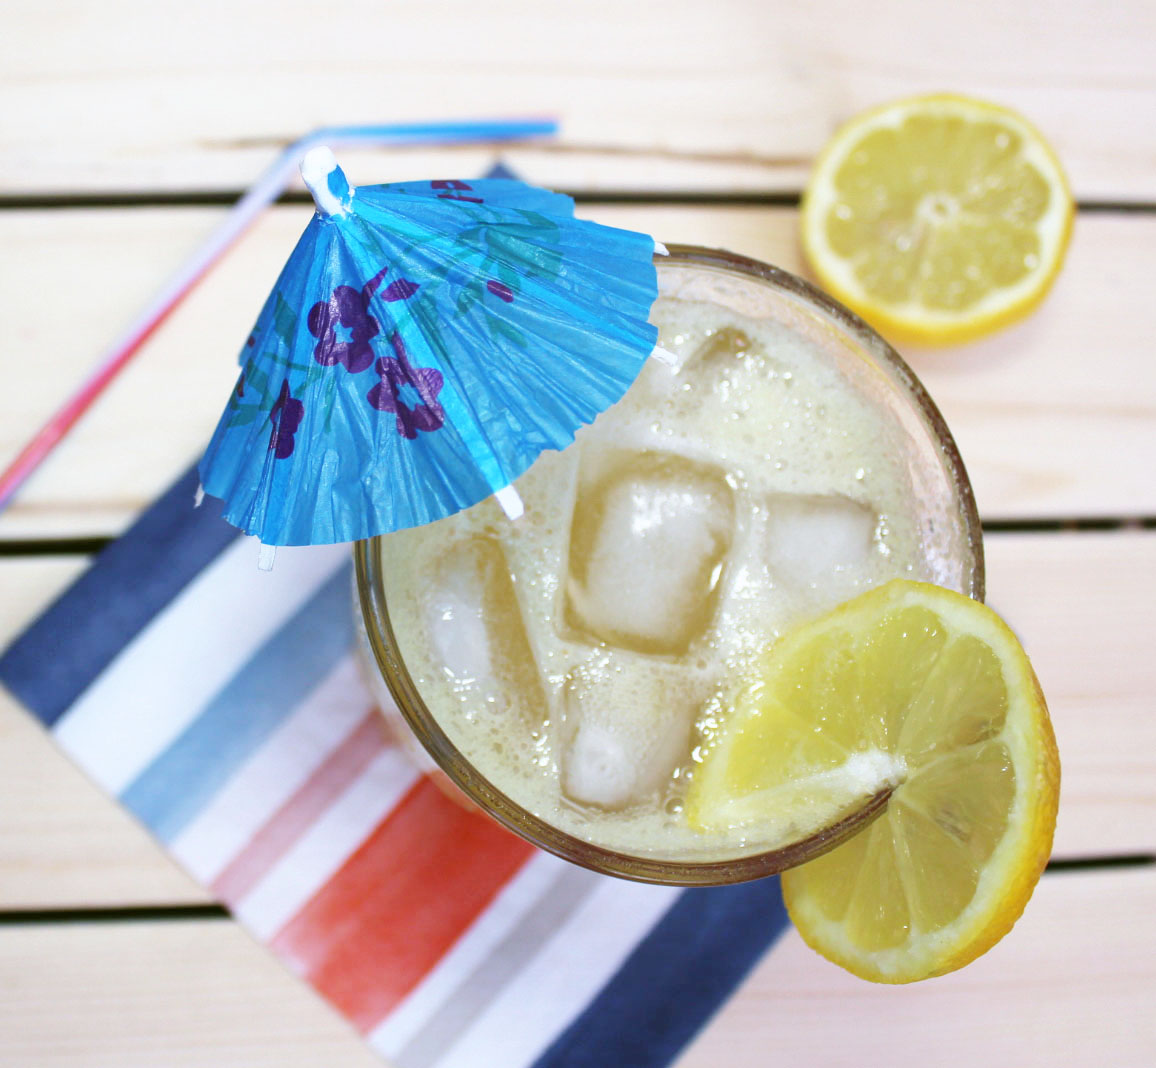 Rm punch, cocktail, rum punch recipe, Iceland, #PowerOfFrozen, dadbloguk, dadbloguk.com